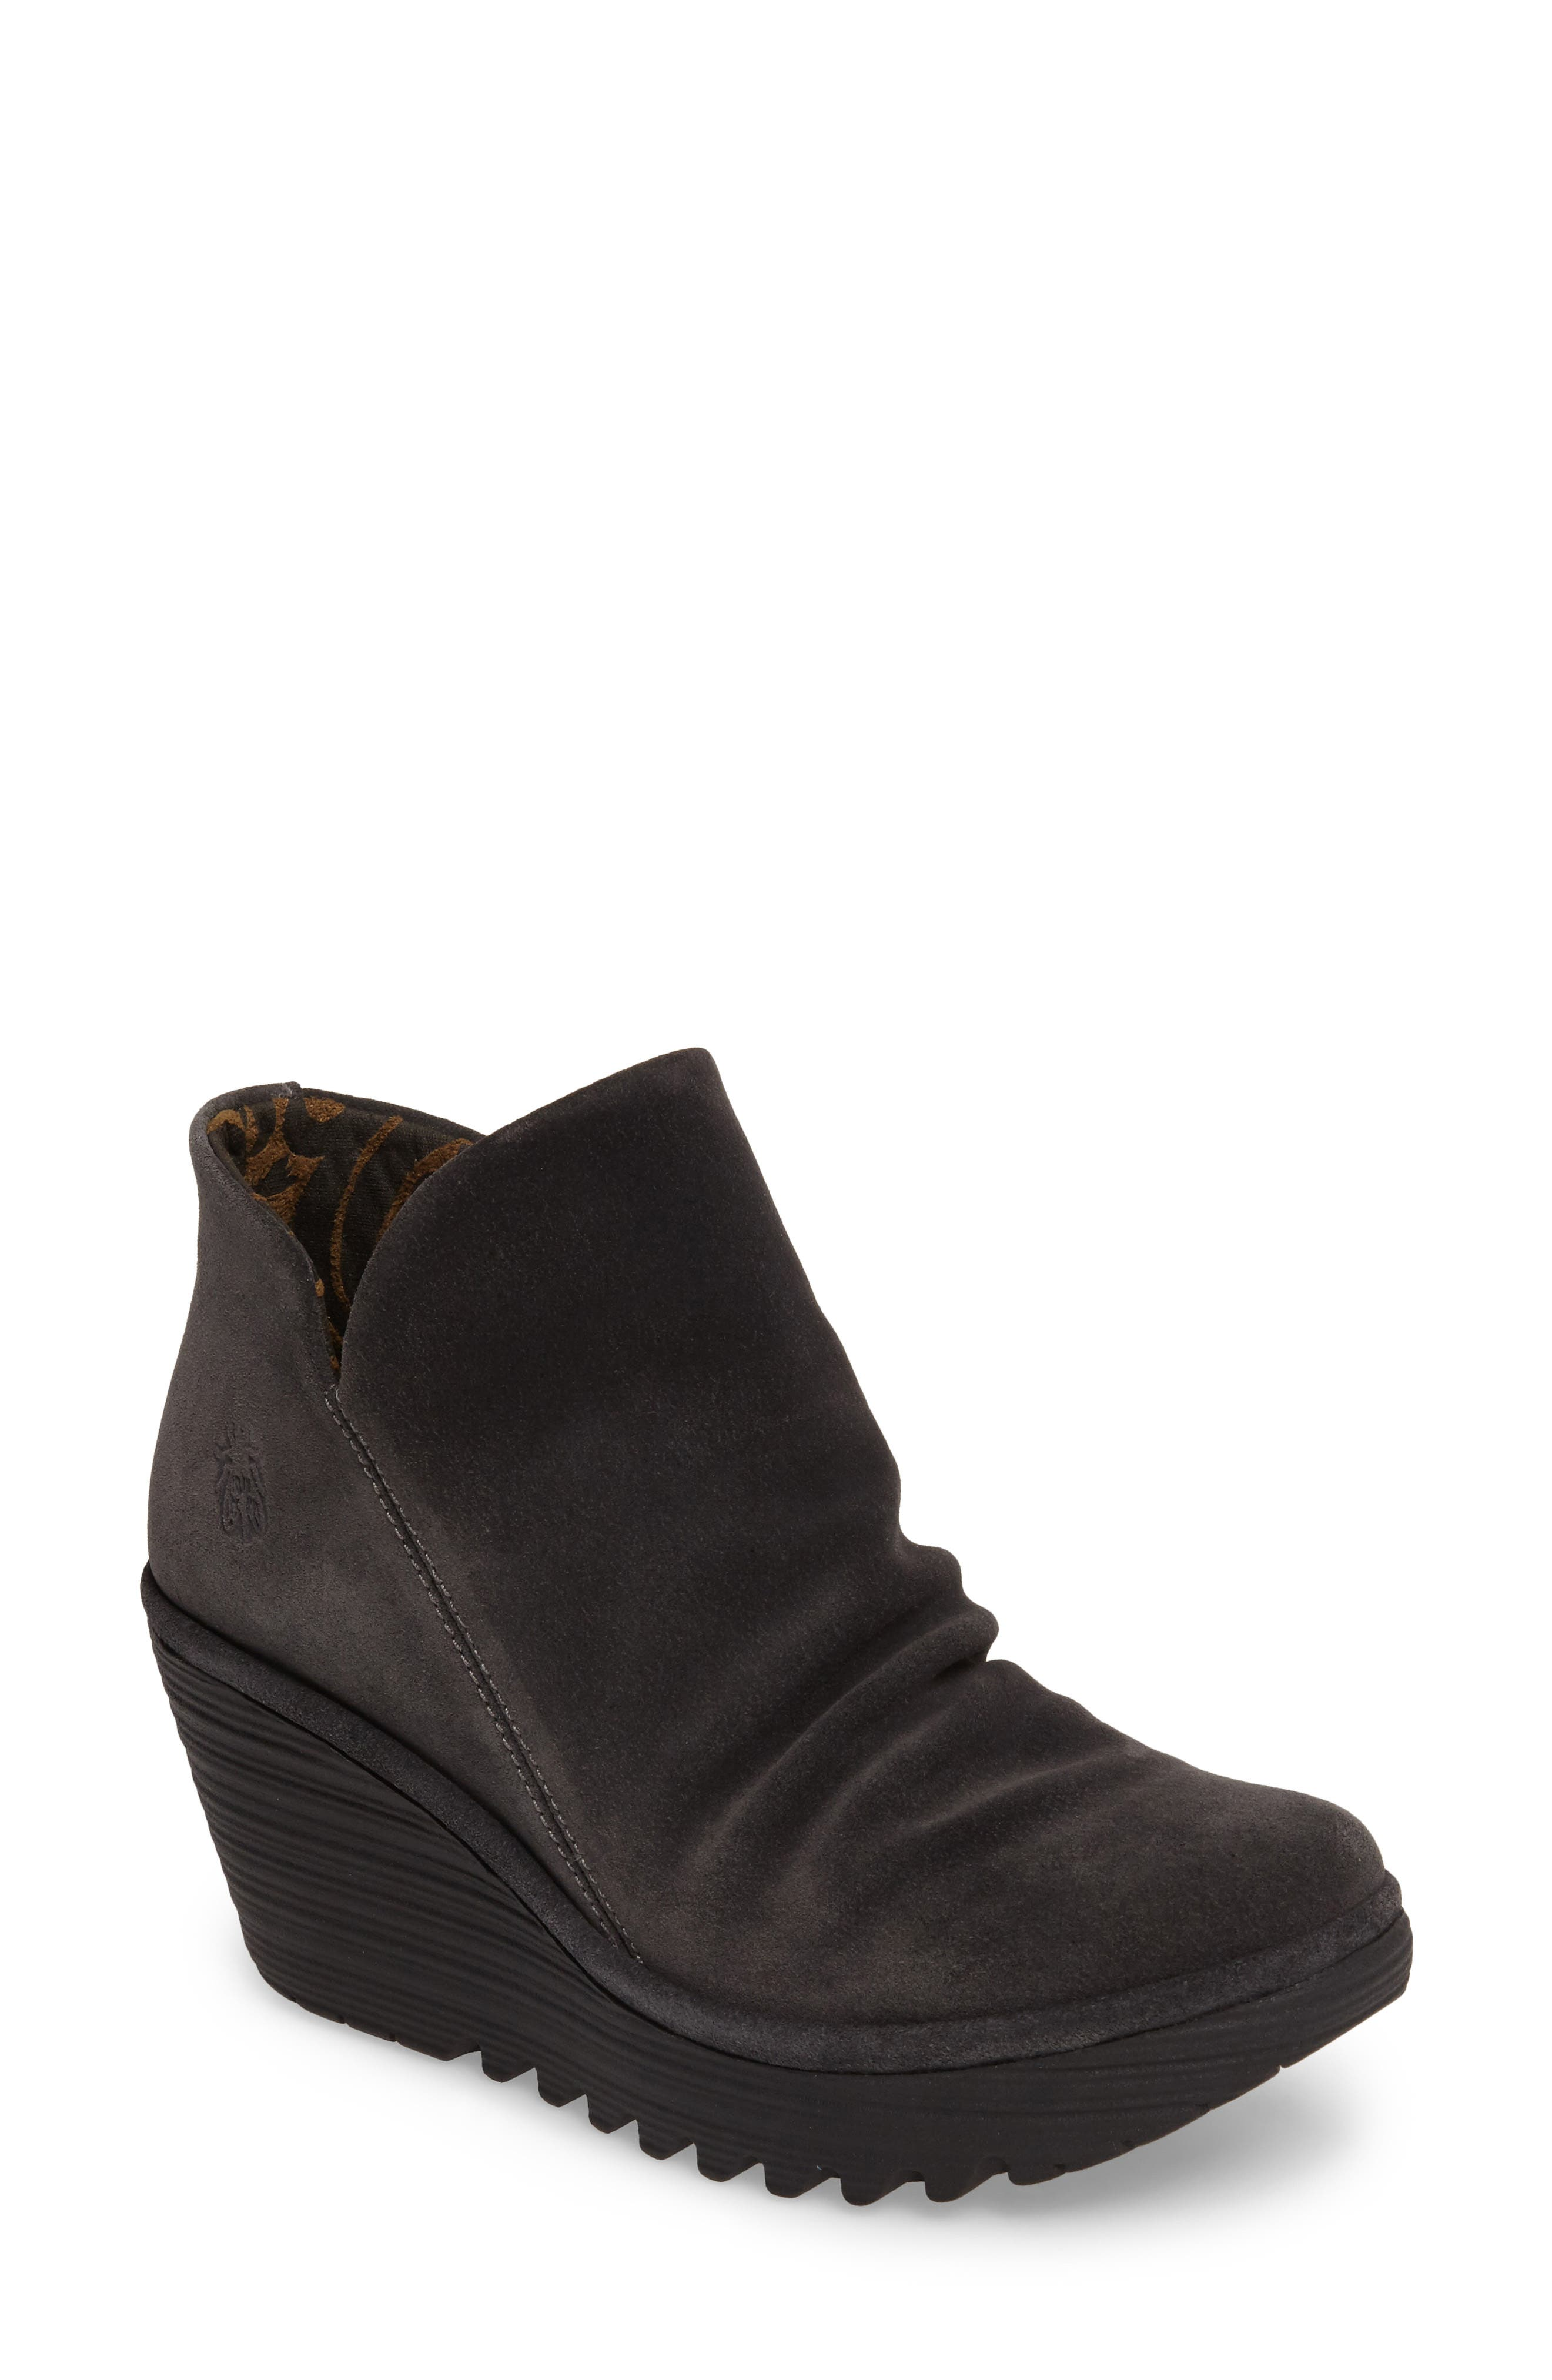 'Yip' Wedge Bootie,                         Main,                         color, BLACK